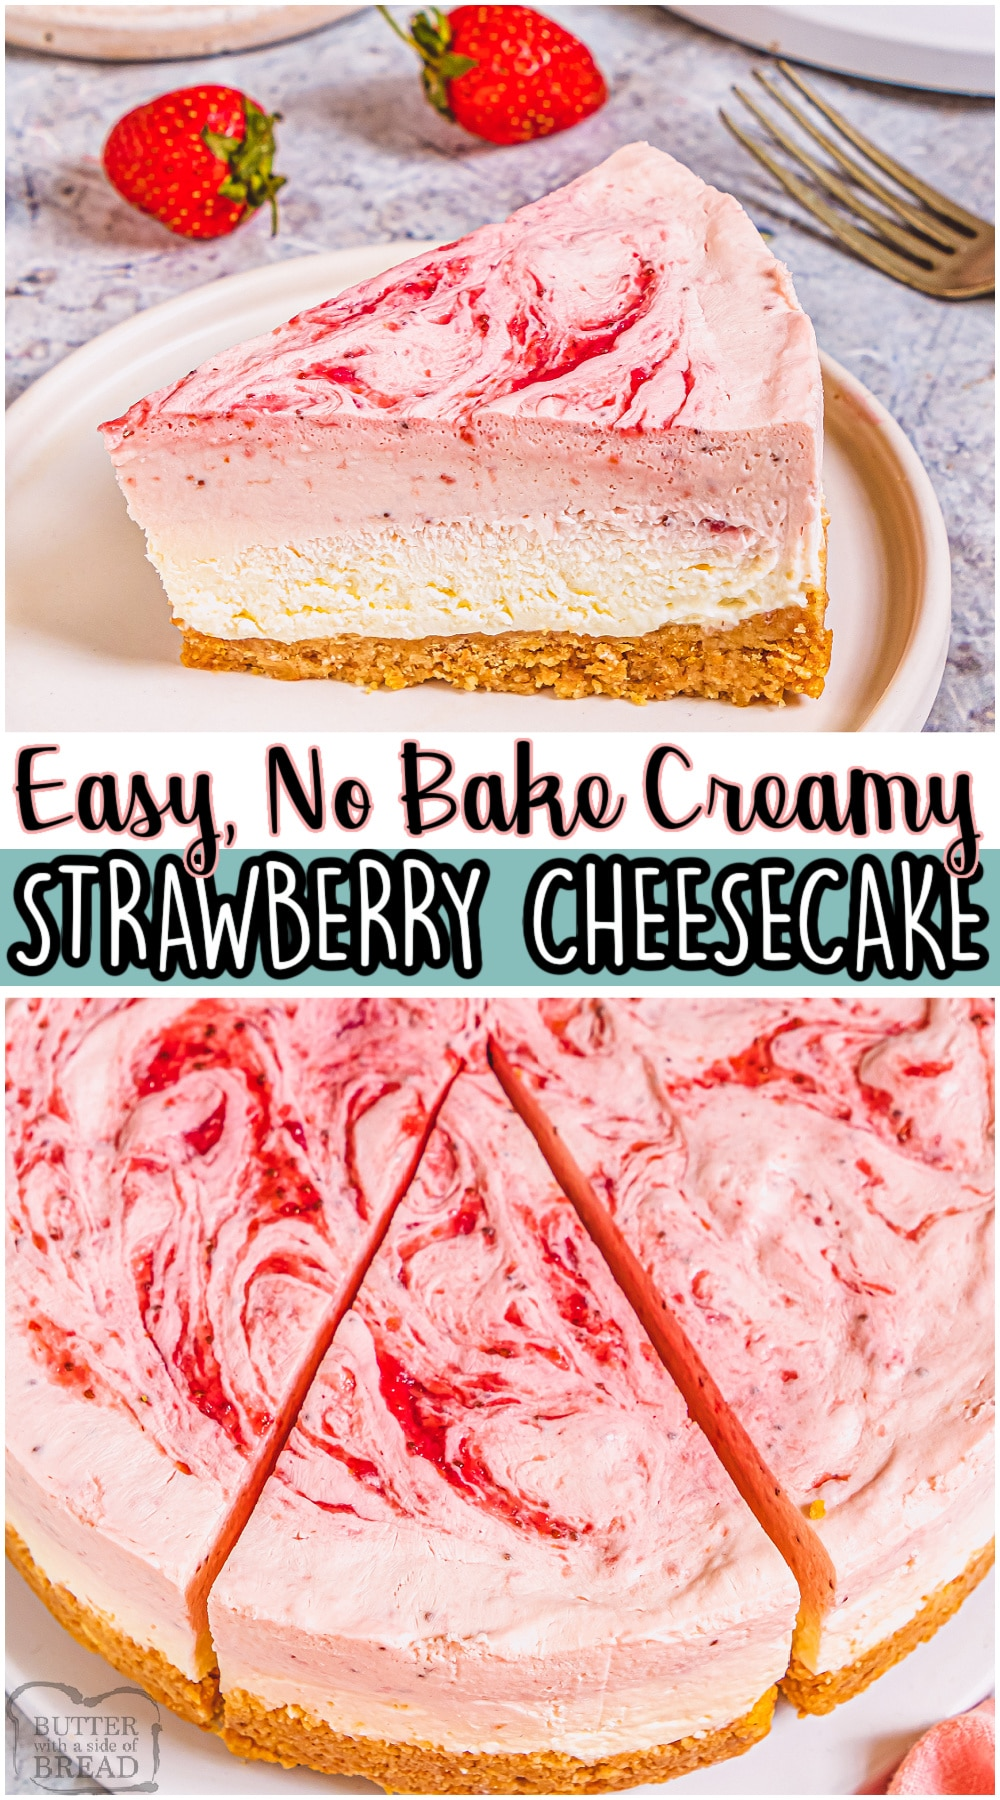 No Bake Strawberry Cheesecake made with a graham cracker crust, creamy cheesecake filling, & blended fresh strawberries! Double layer cheesecake with fantastic berry flavor perfect for summer! #cheesecake #nobake #strawberry #dessert #easyrecipe from BUTTER WITH A SIDE OF BREAD